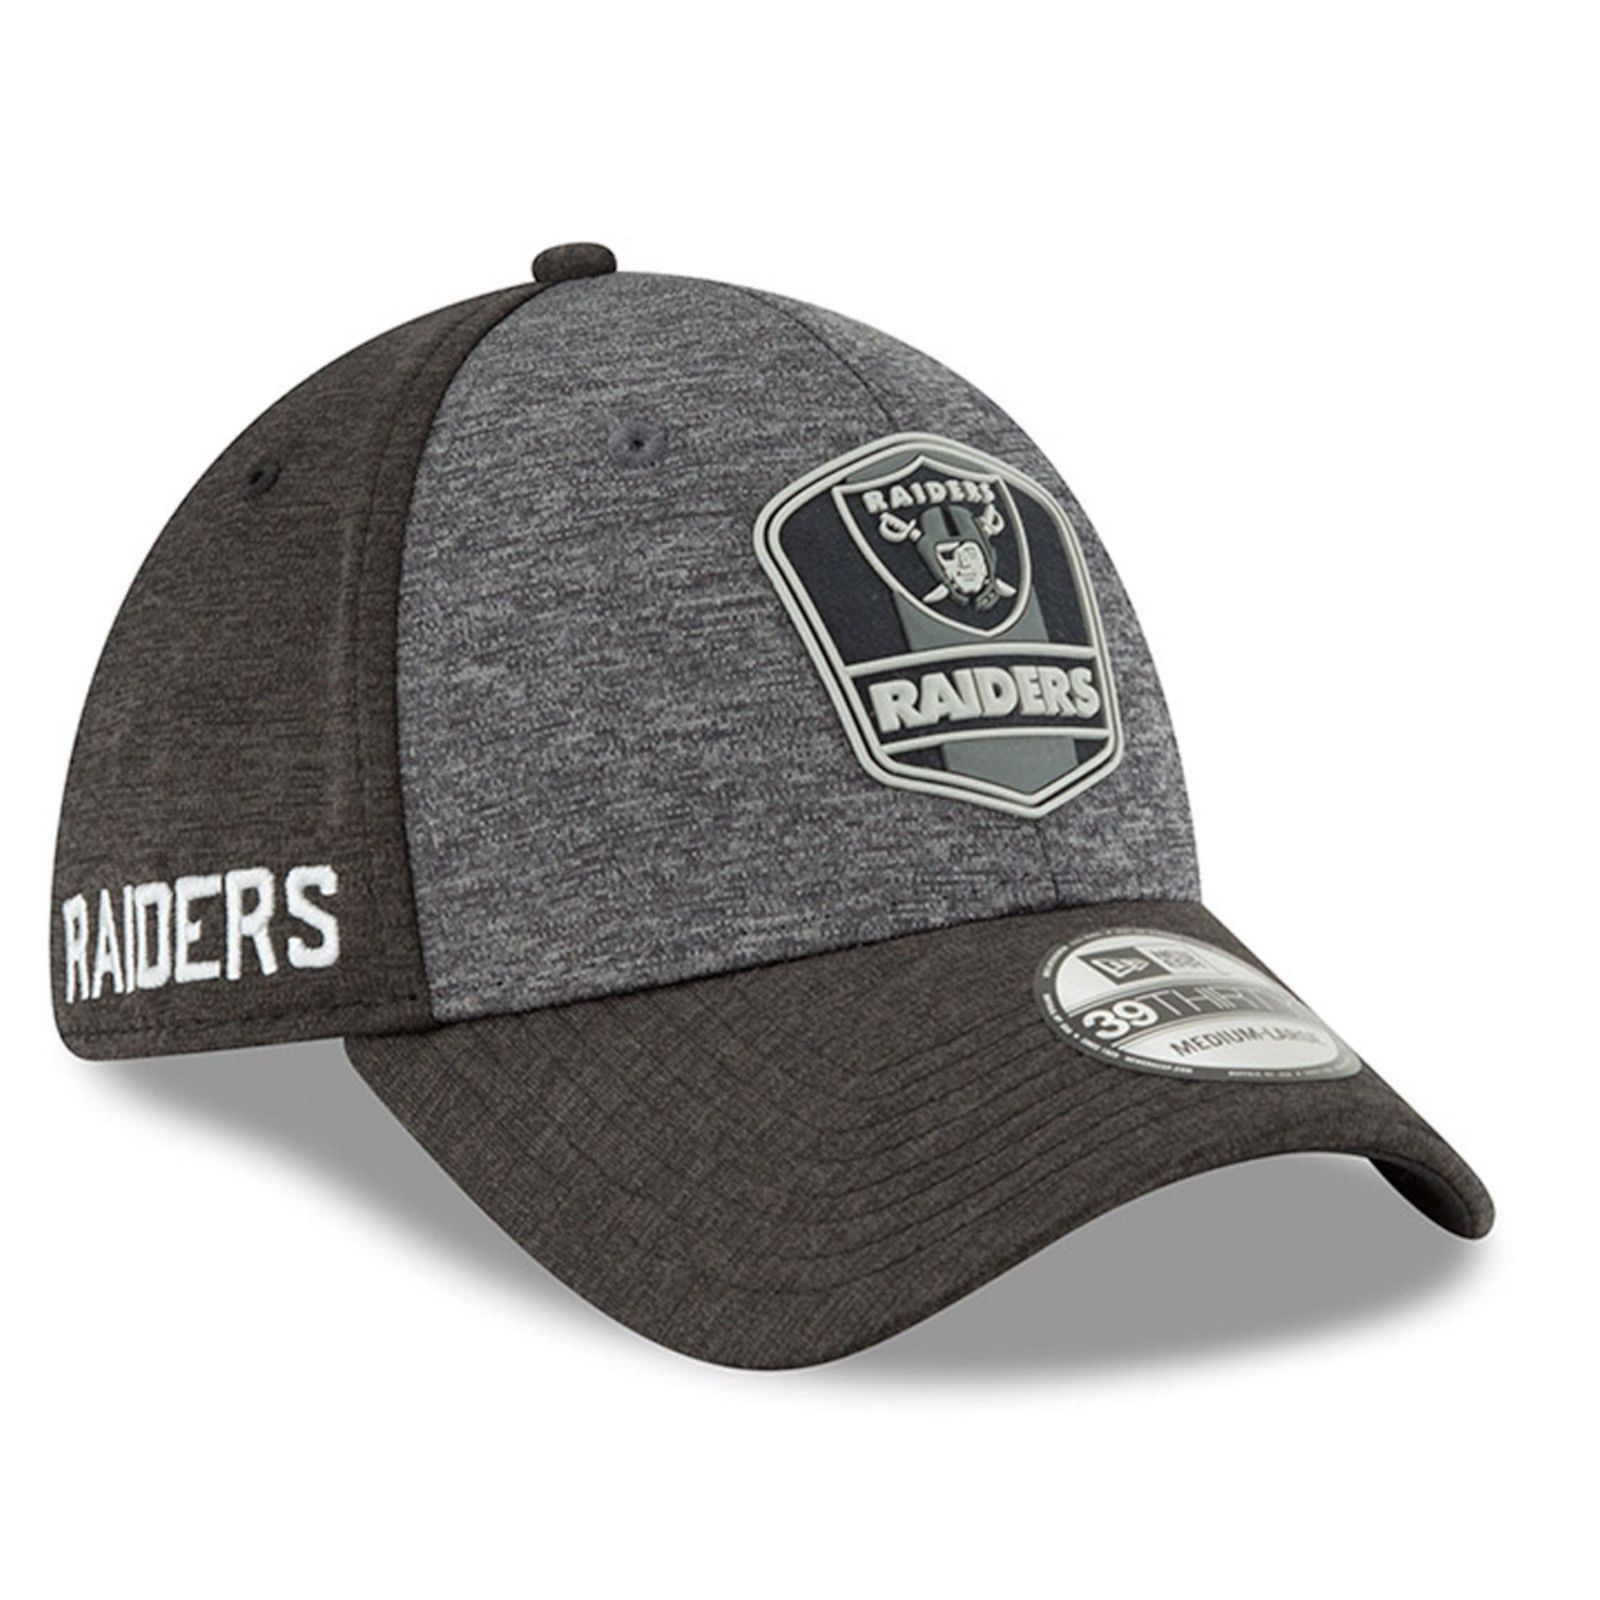 online store 32229 79bcd 2018 Oakland Raiders New Era 39THIRTY NFL Sideline Road On Field Cap Flex  Hat